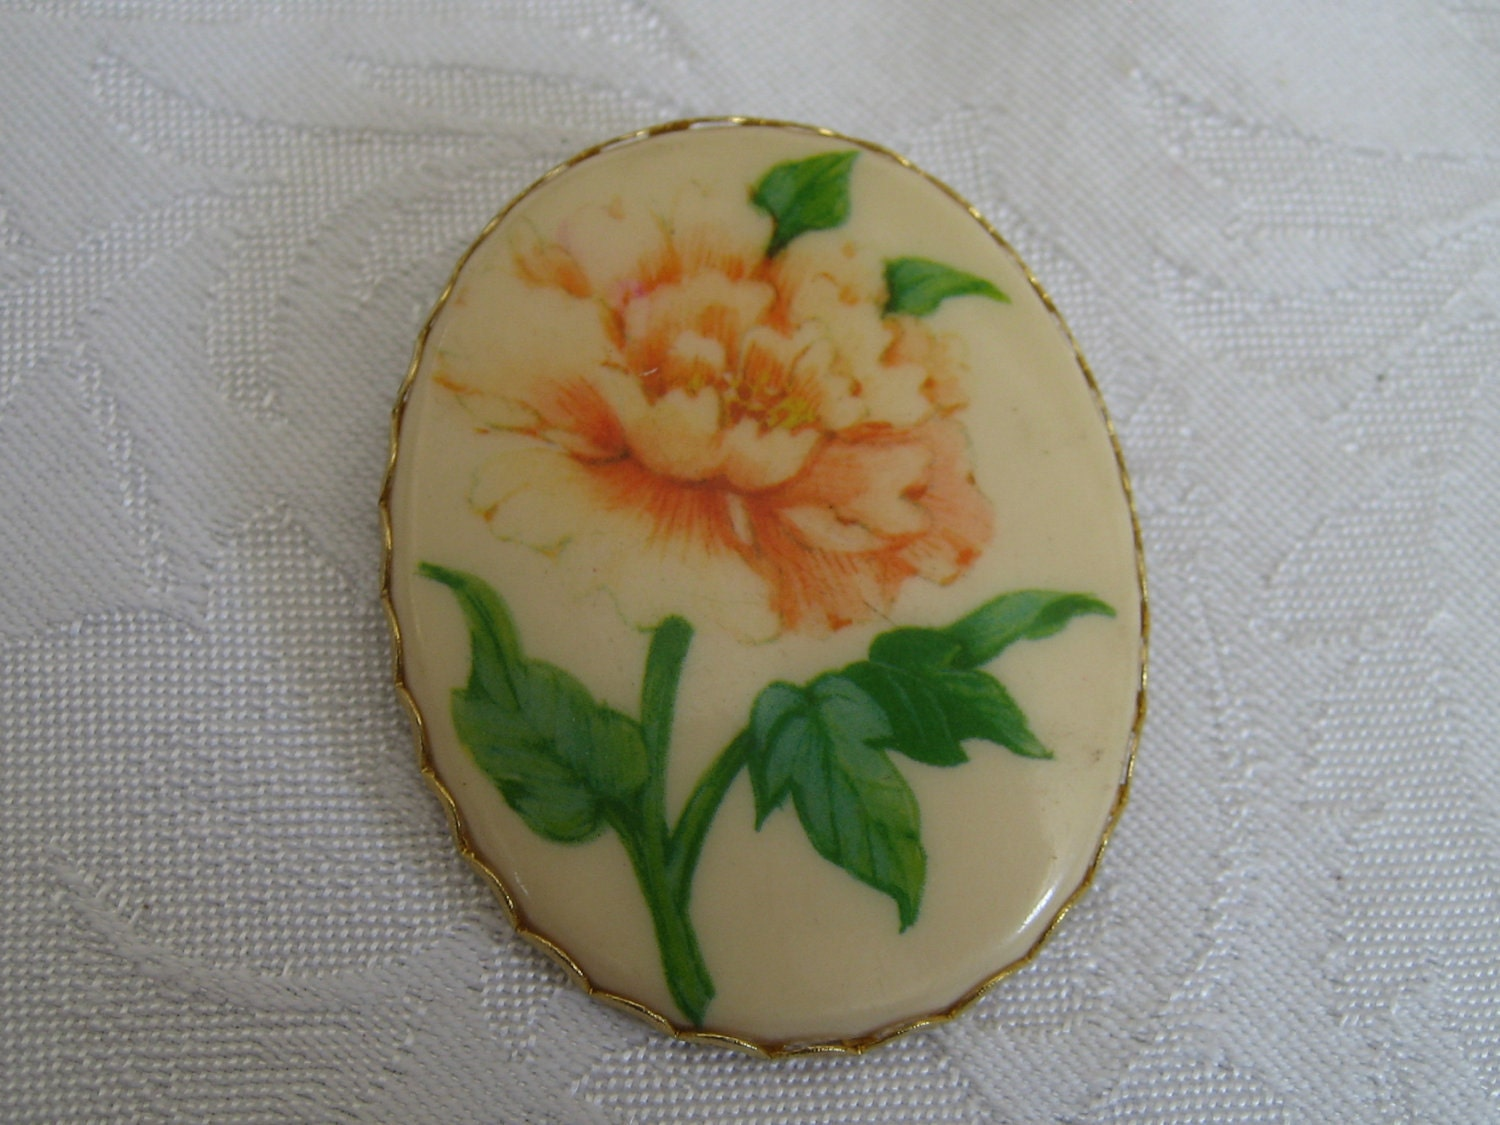 Vintage hallmark flower costume jewelry brooch and pendant Hallmark flowers